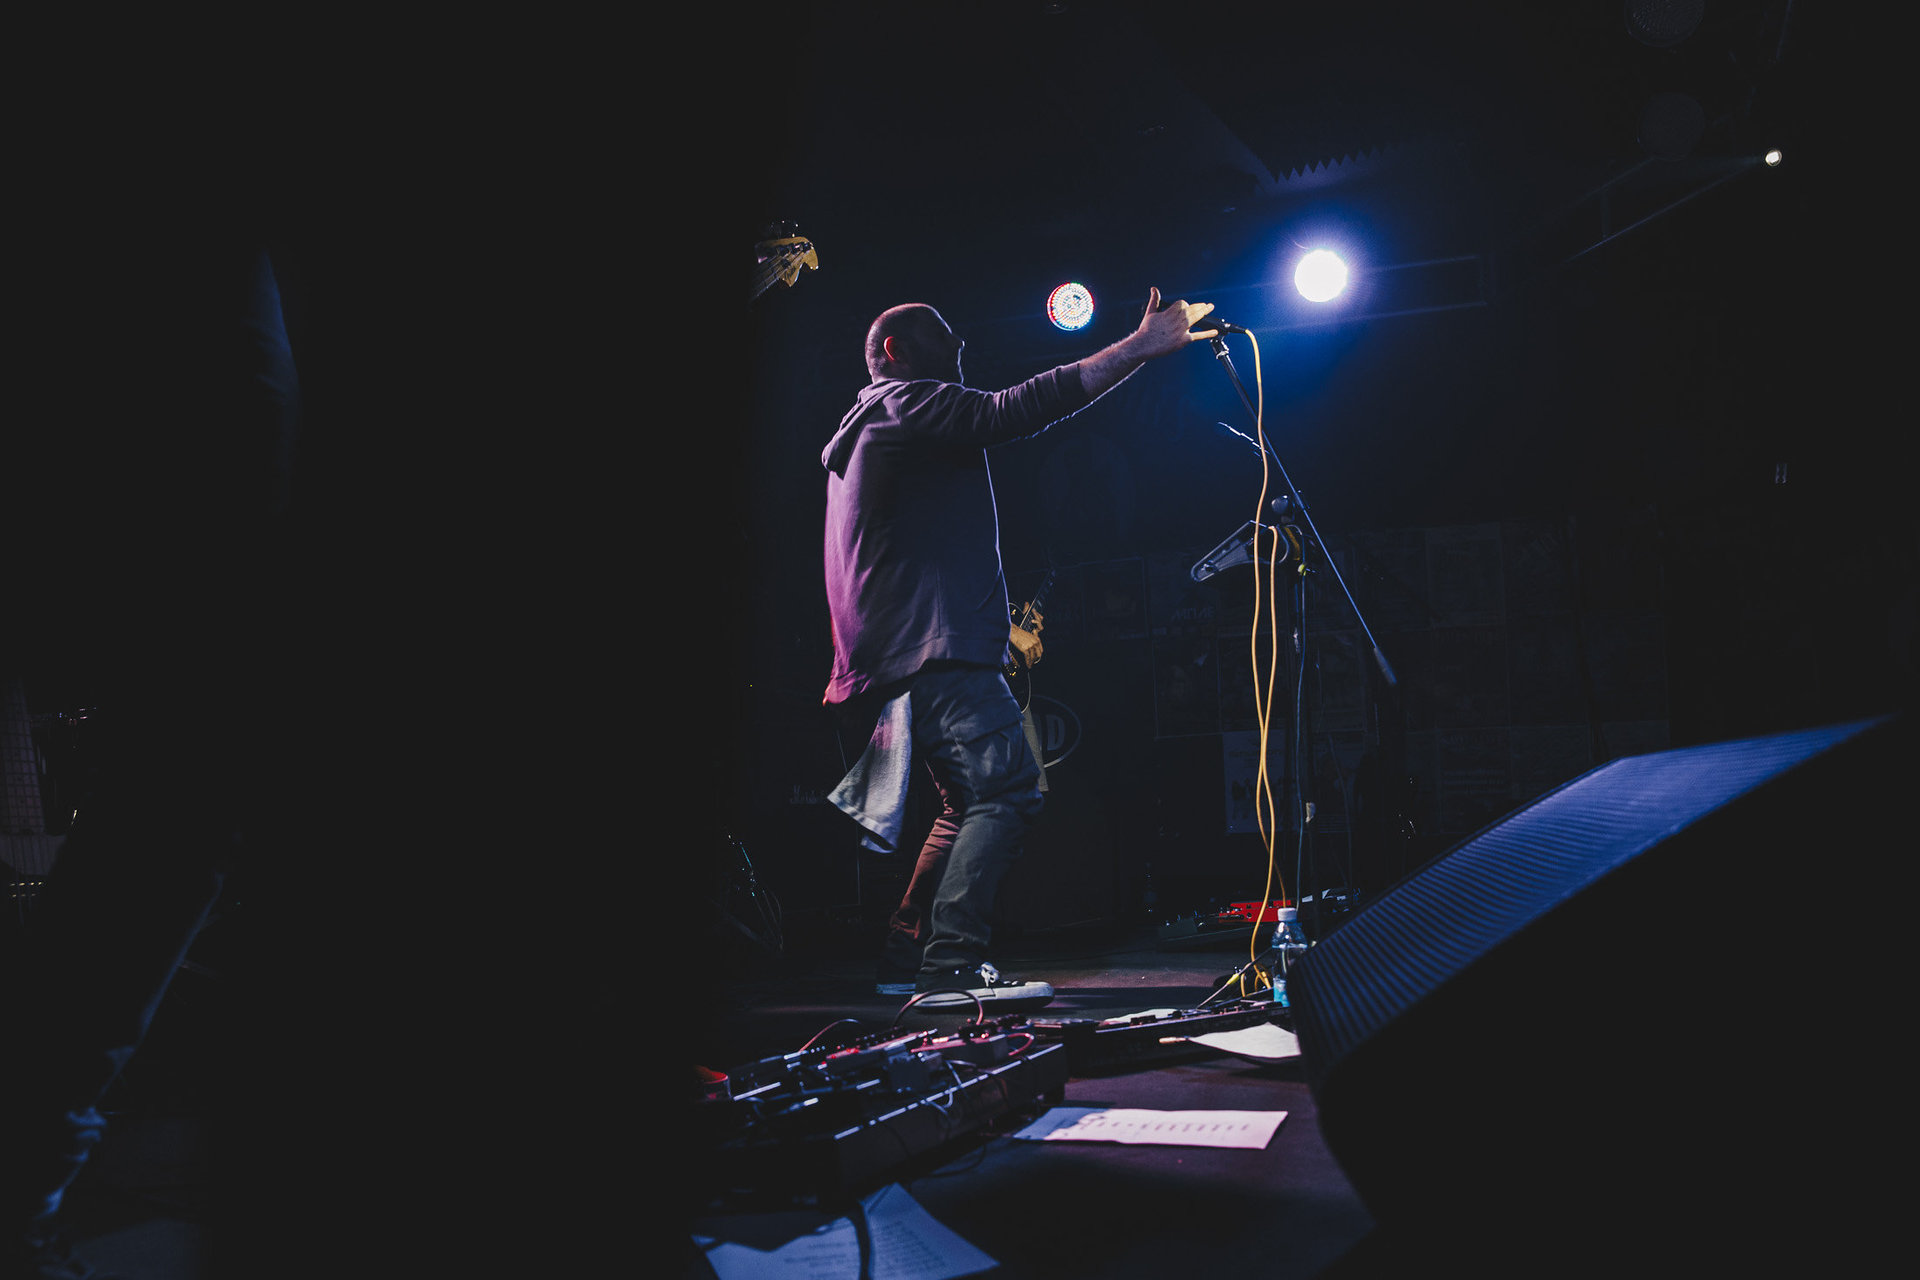 Abettor playing live